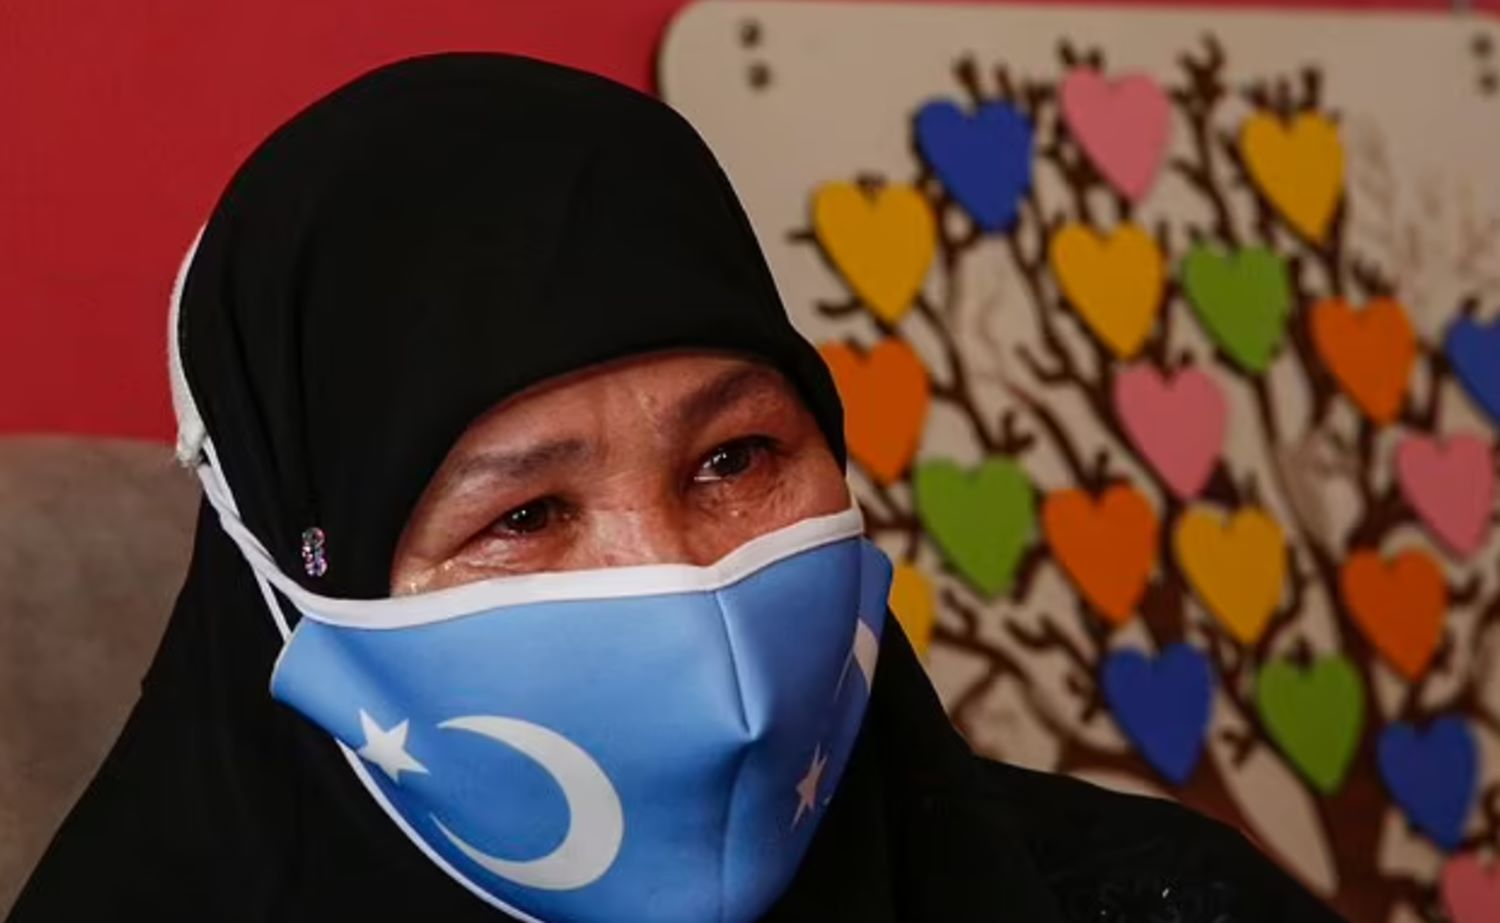 Uighur people say China forced them to have abortions bulldozed their homes and tortured them